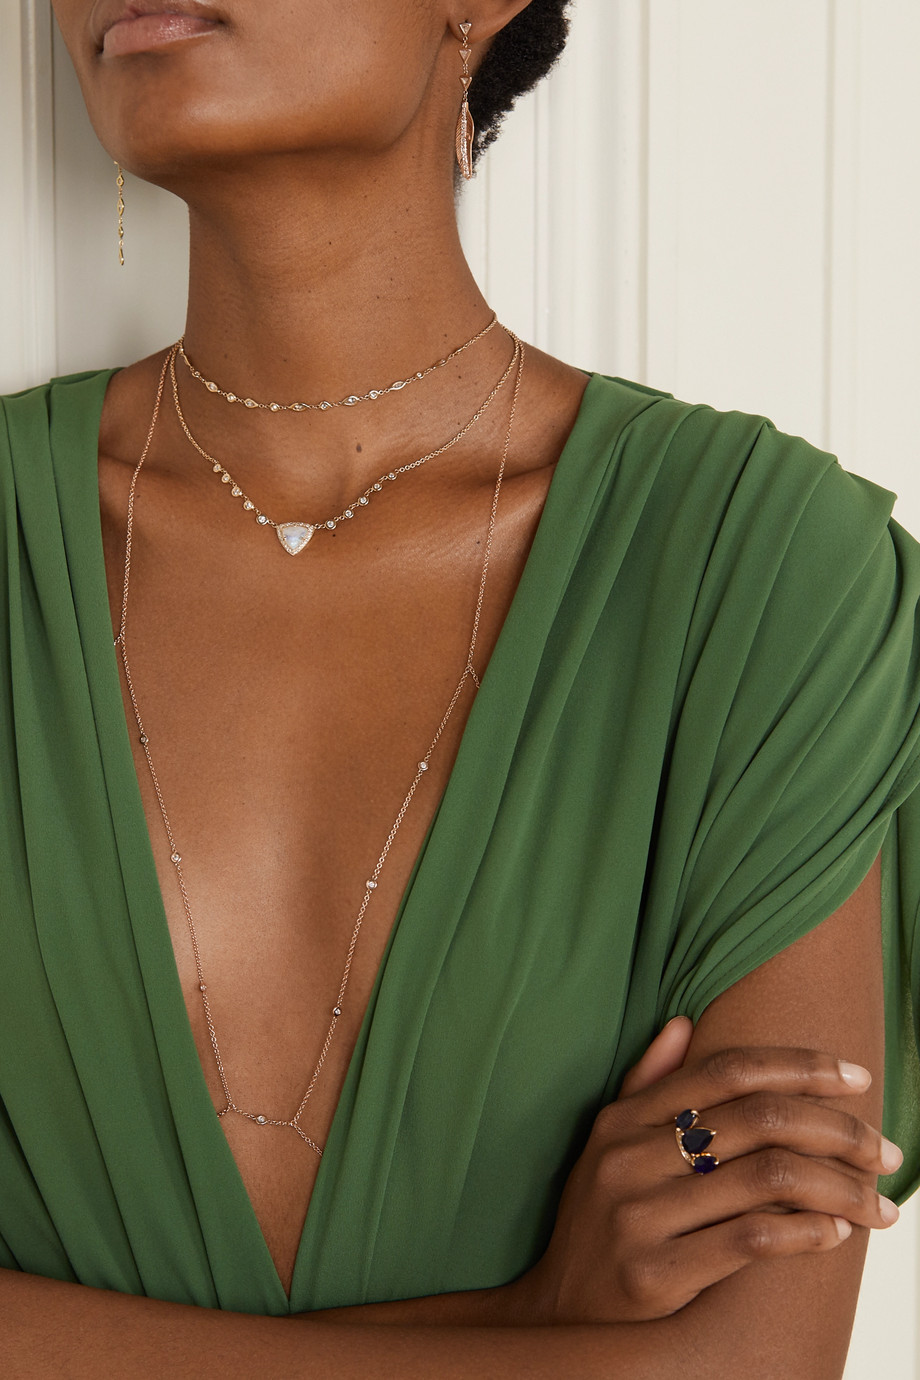 Jacquie Aiche 14-karat rose gold diamond body chain